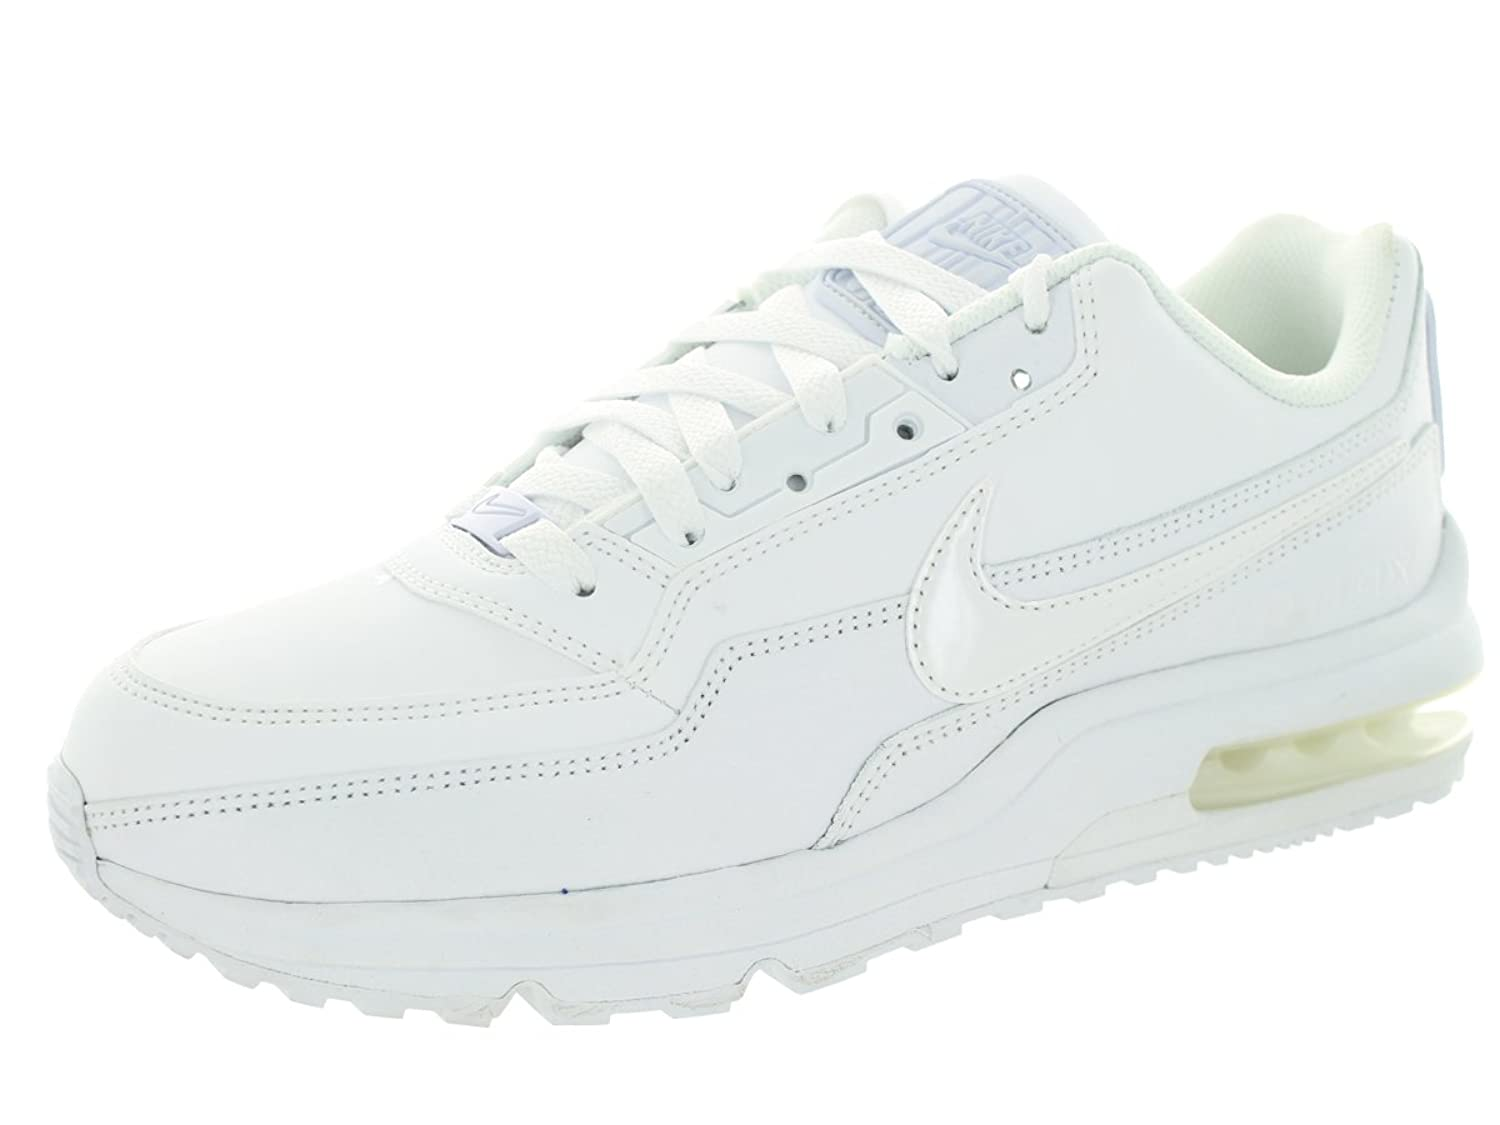 wdhdg Nike Mens Air Max LTD 3 Synthetic Trainers: Amazon.co.uk: Shoes & Bags